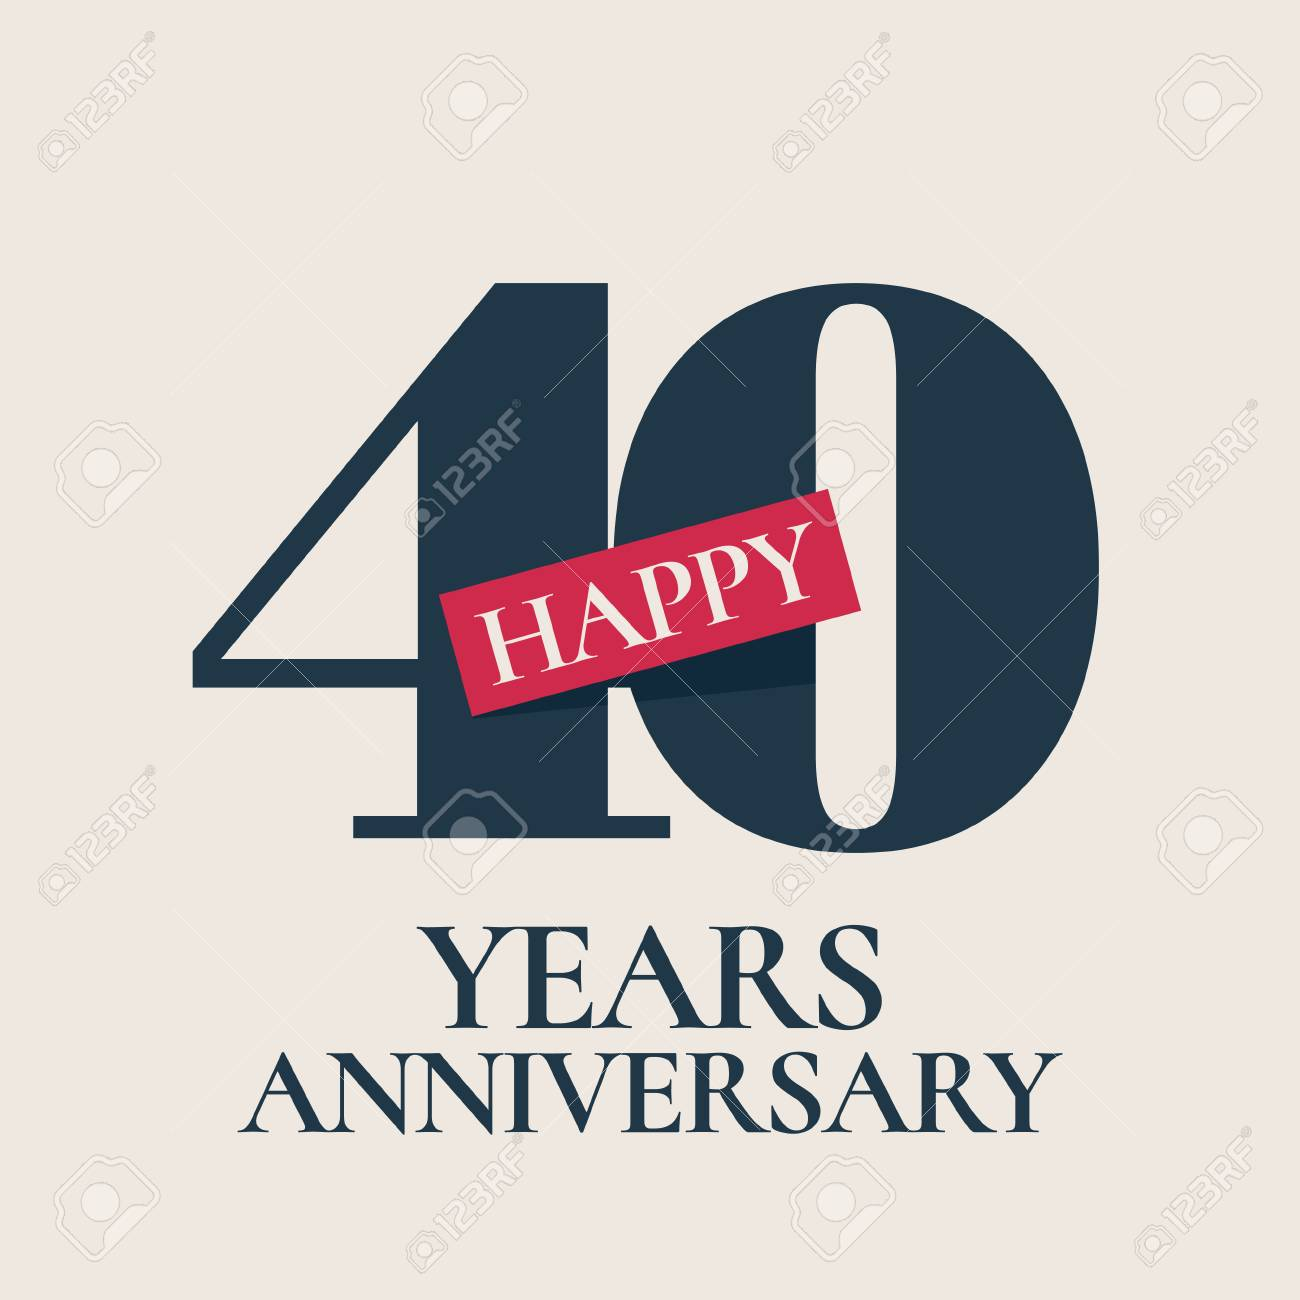 40 Years Anniversary Vector Icon Template Design Element